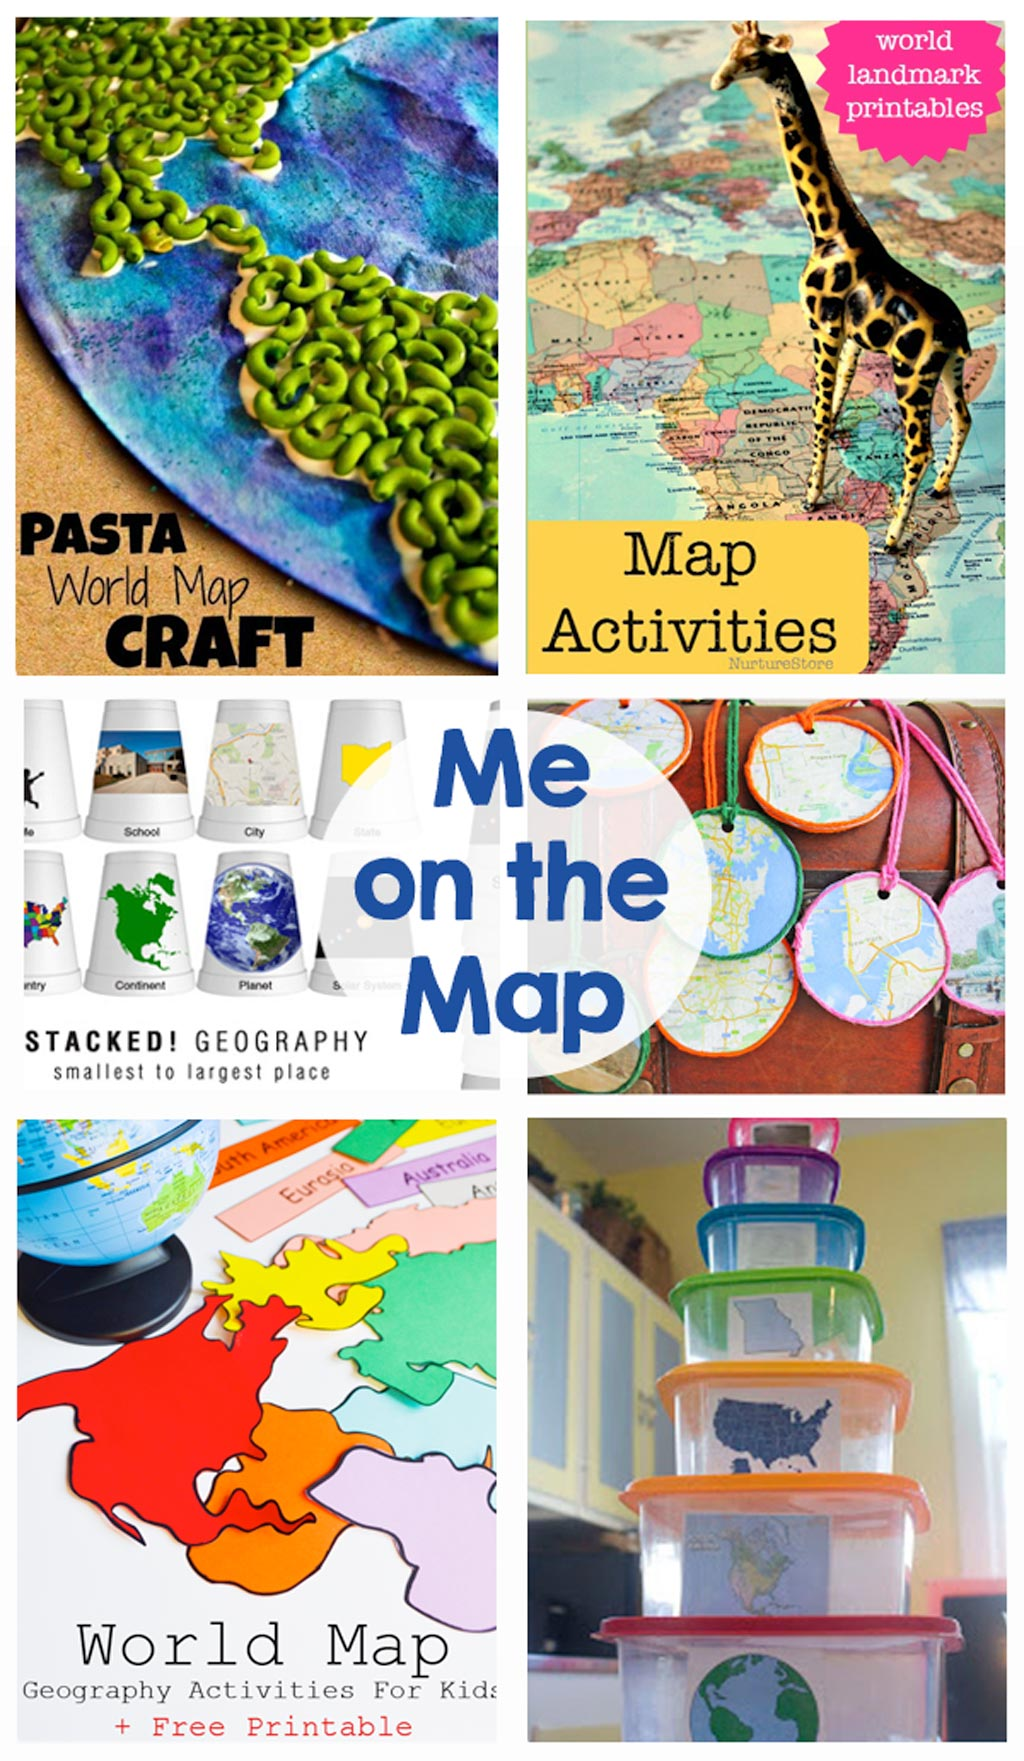 Me on the map the crafting chicks me on the map activities games crafts printables these activities will gumiabroncs Gallery